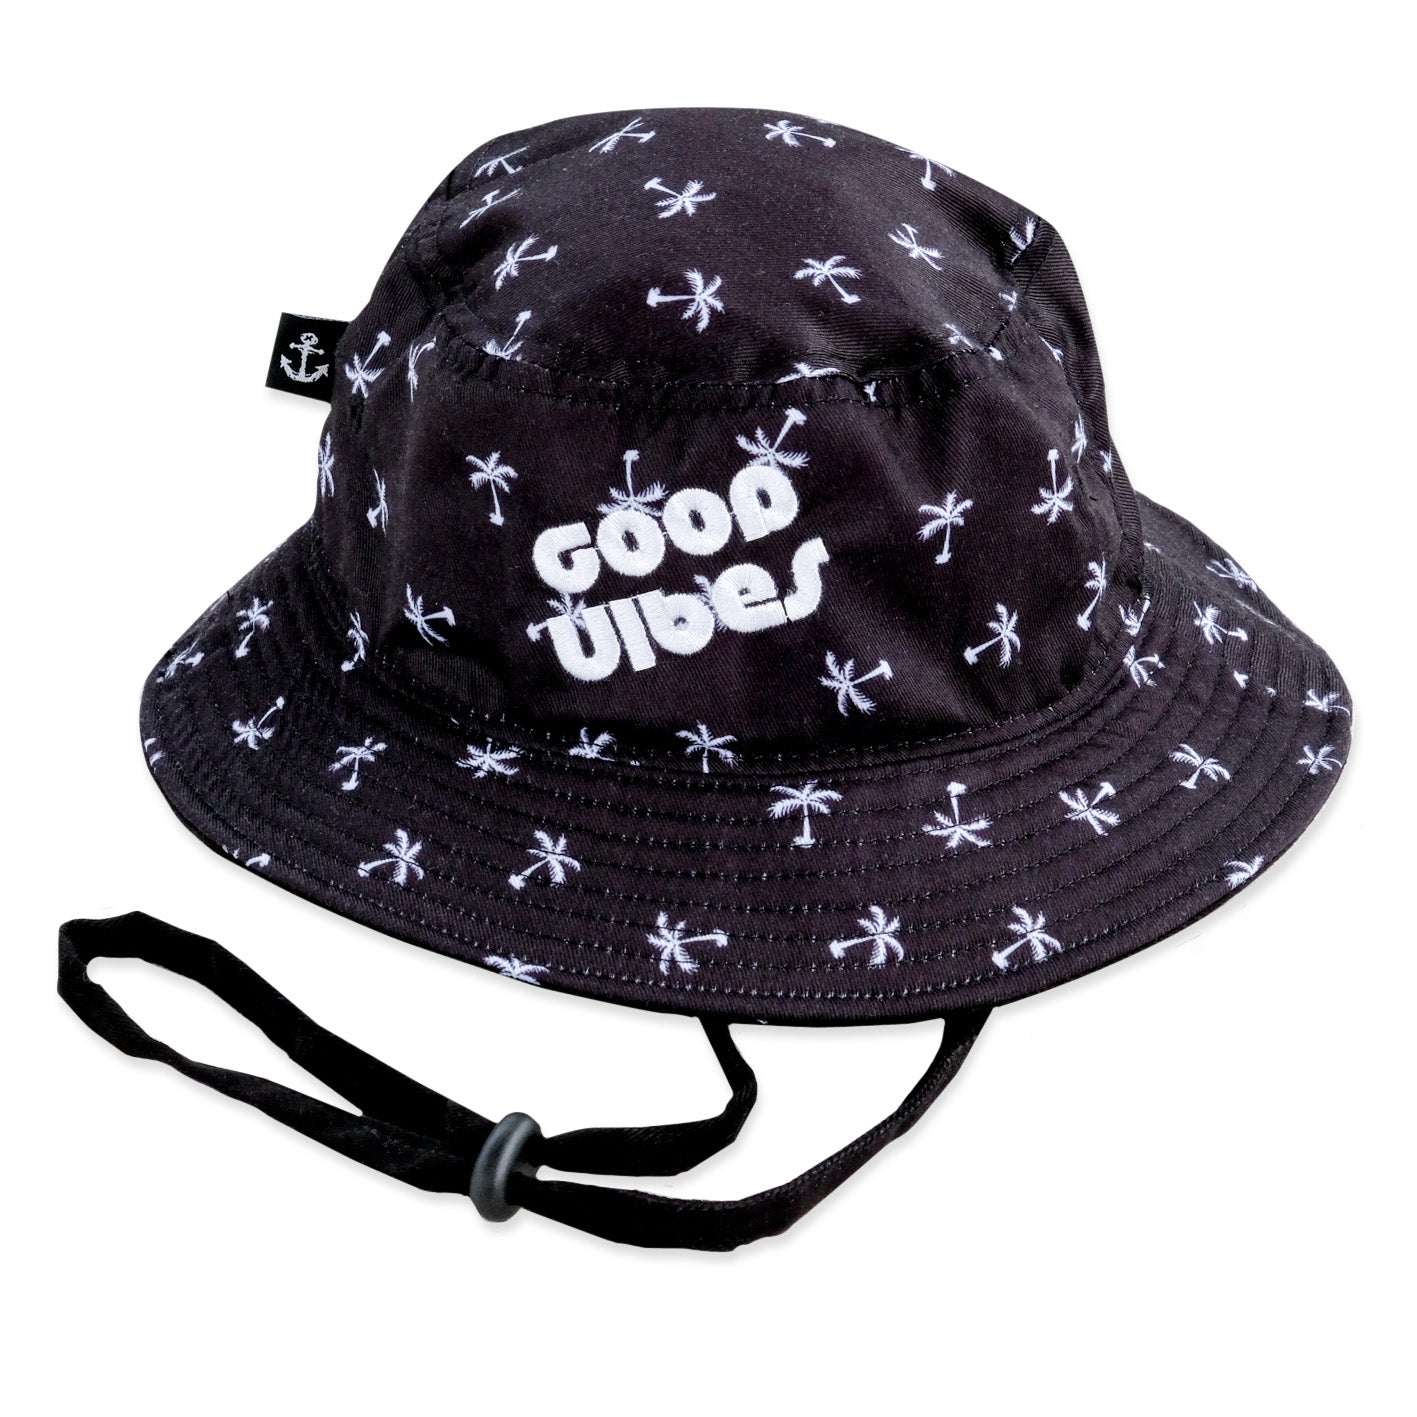 Good Vibes Bucket Hat from hello stranger kidswear